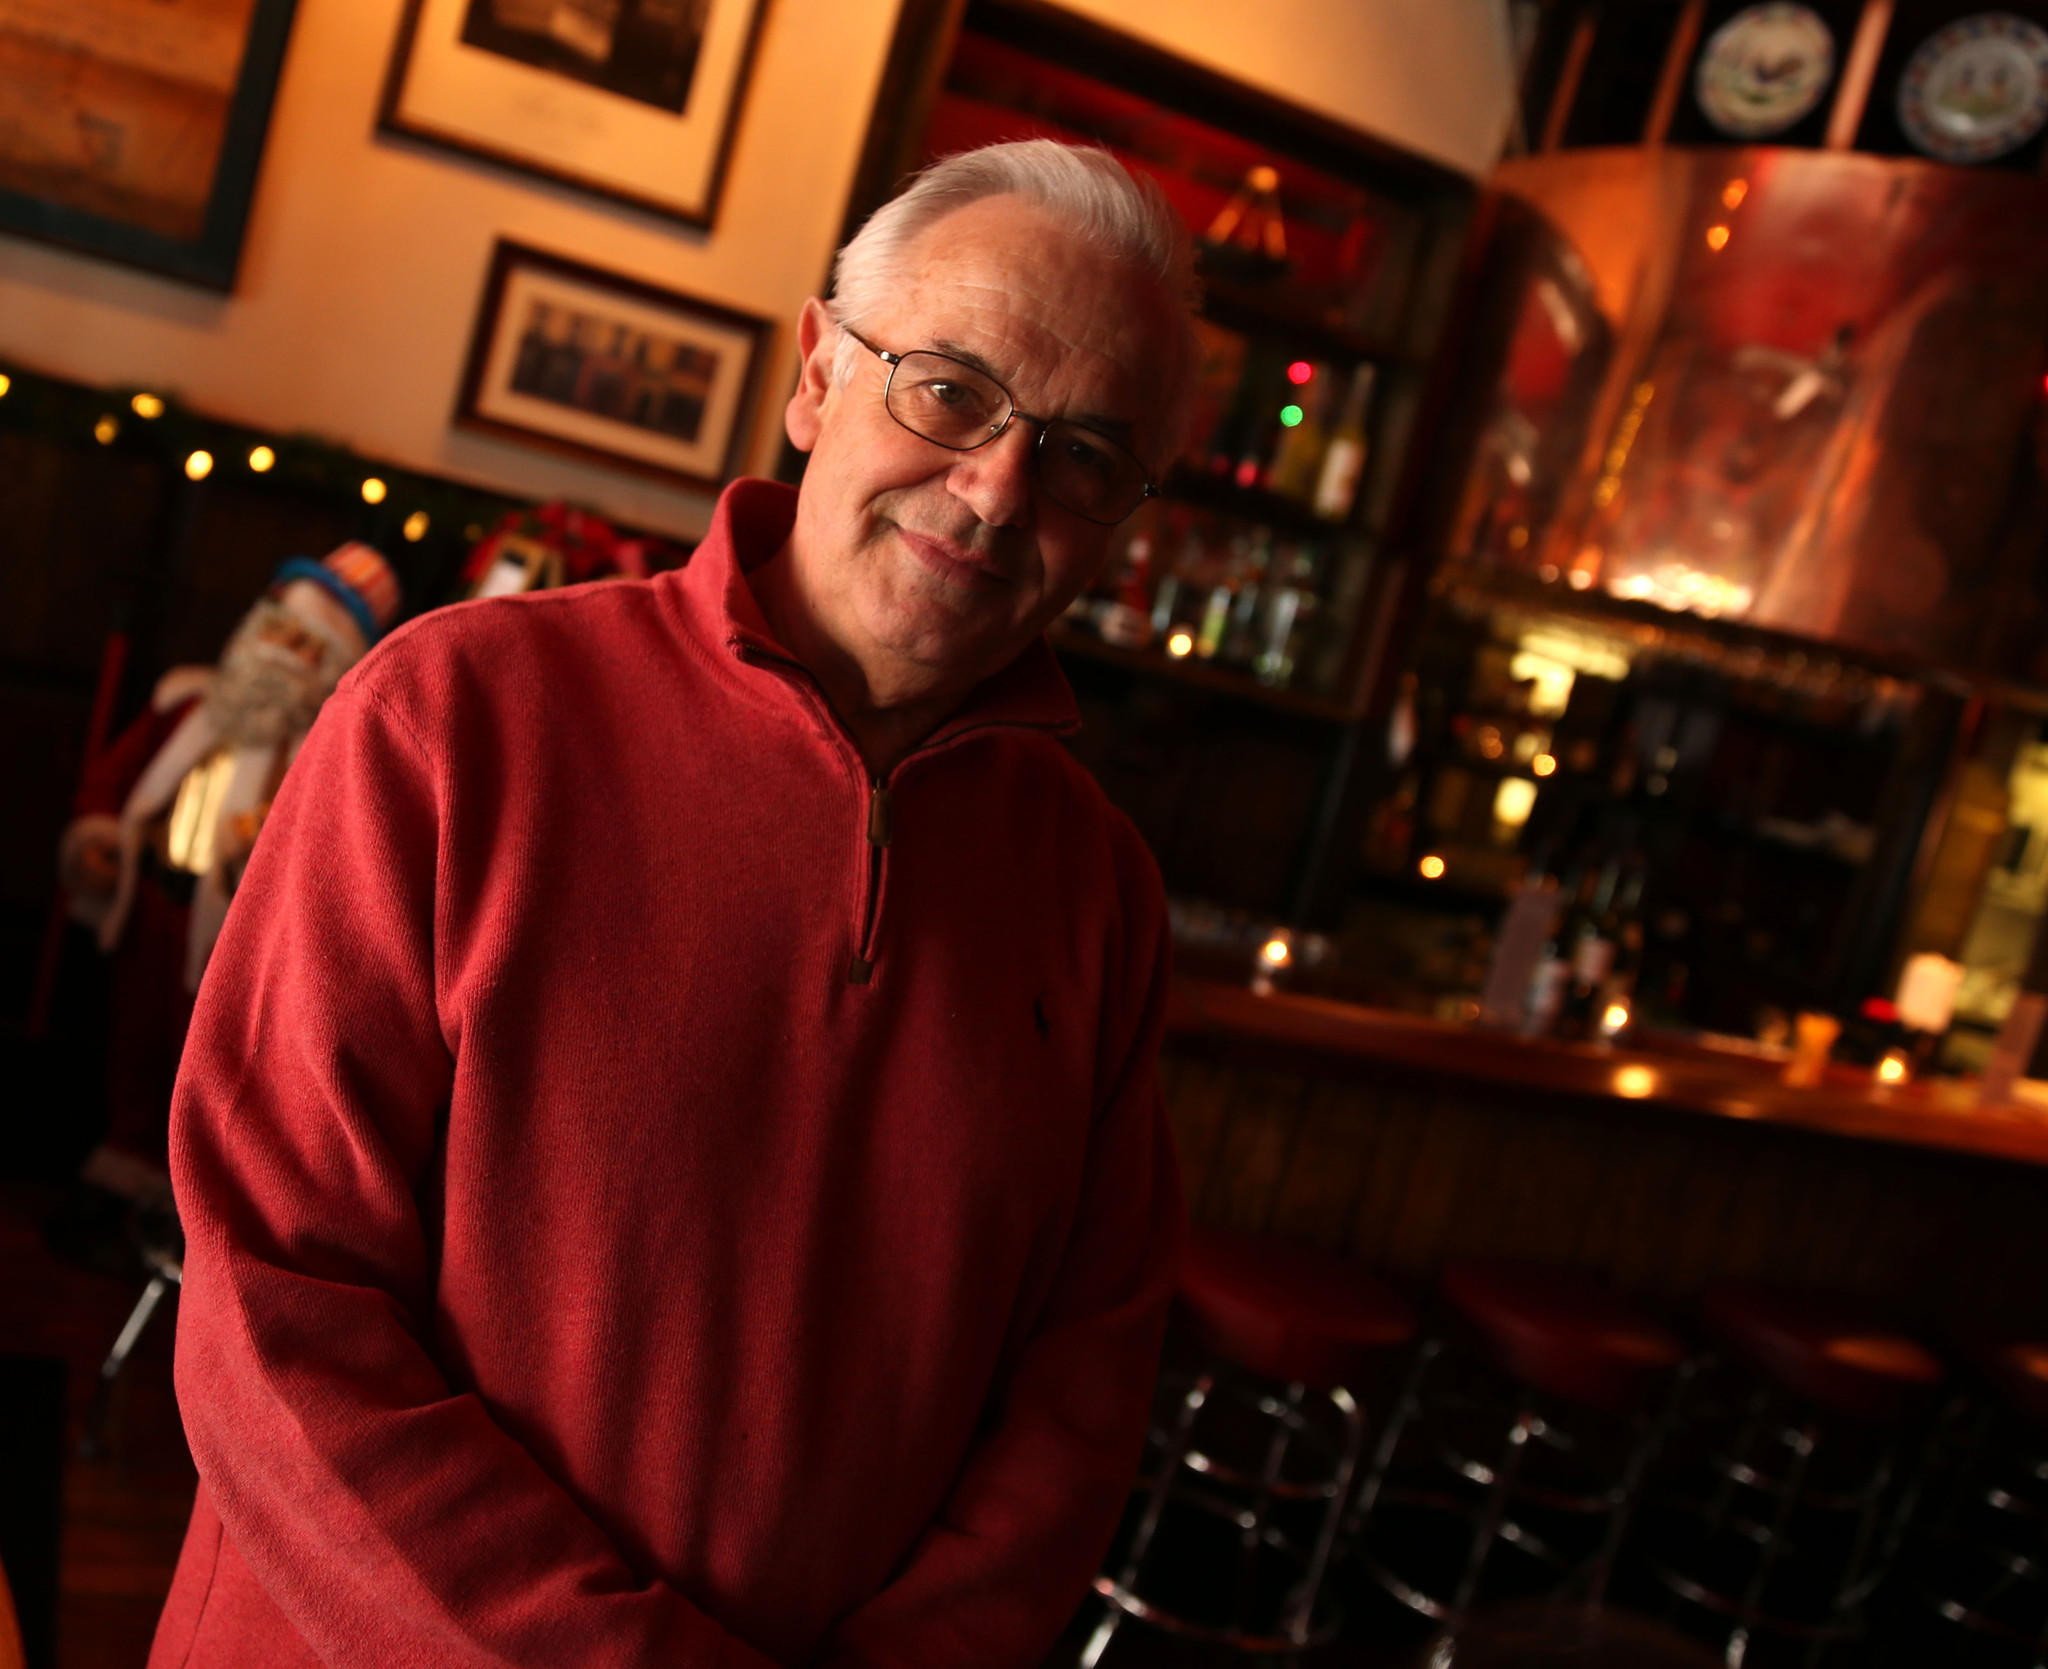 Germain Roignant, 75, reopened Le Creperie on Clark Street quietly in December after closing in August.